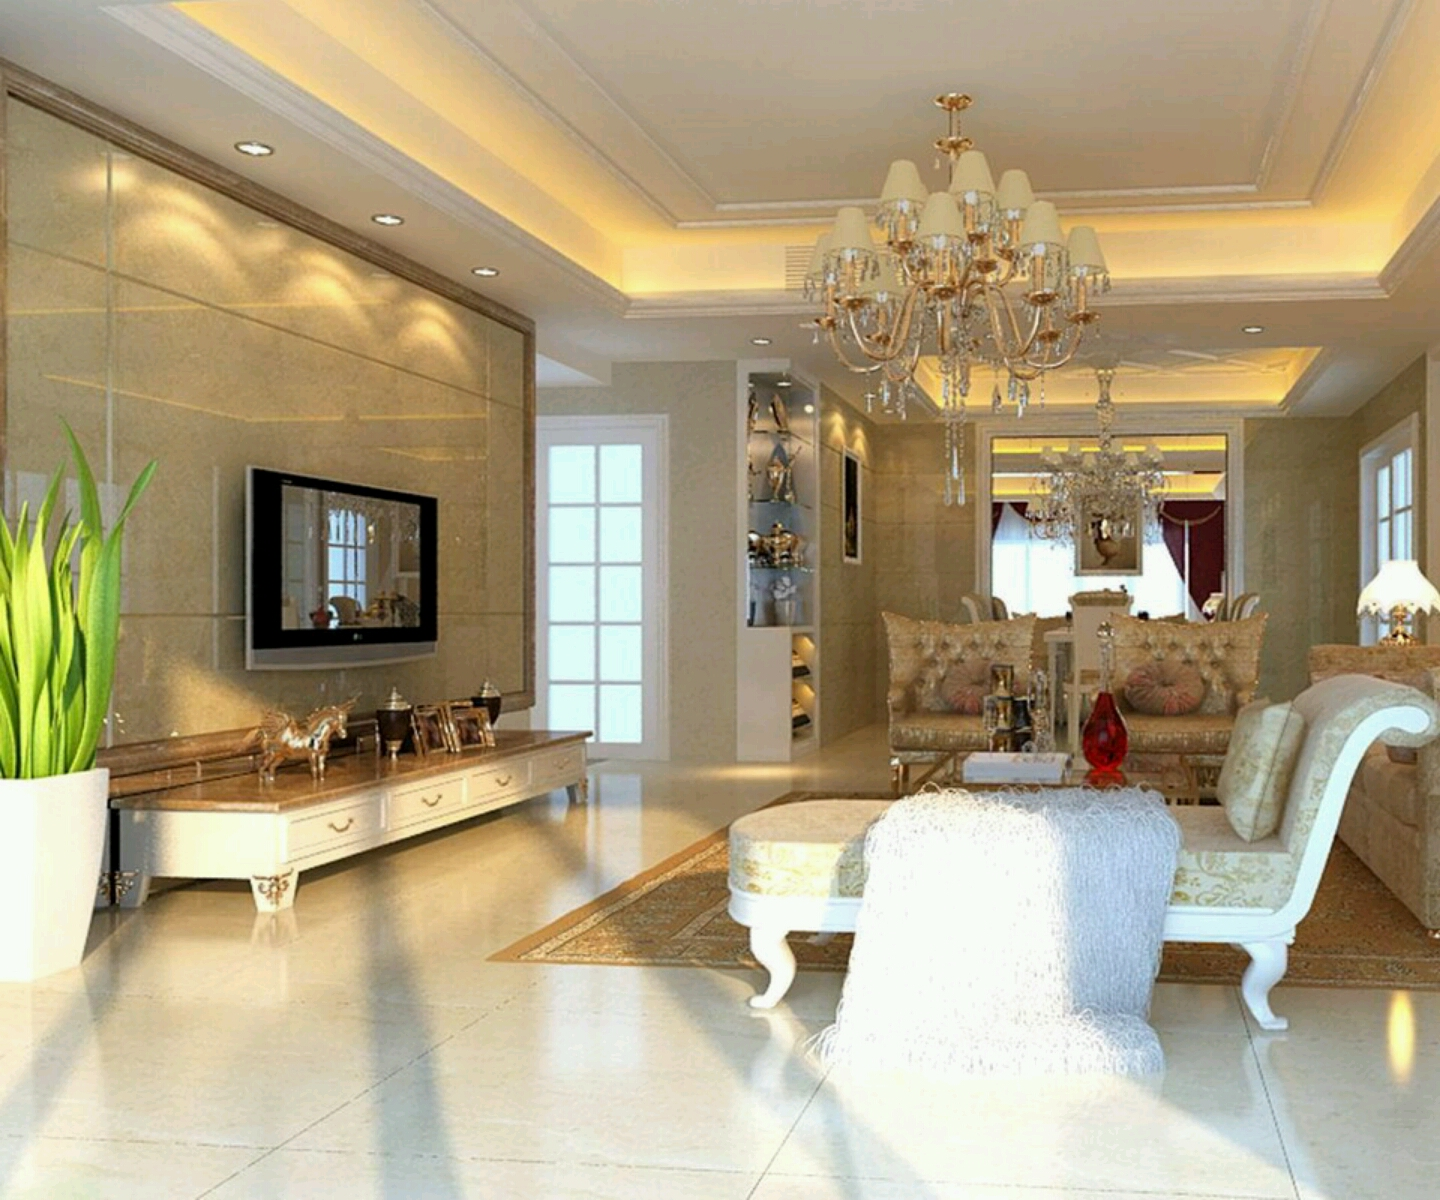 Home Designs October 2012: New Home Designs Latest.: Luxury Homes Interior Decoration